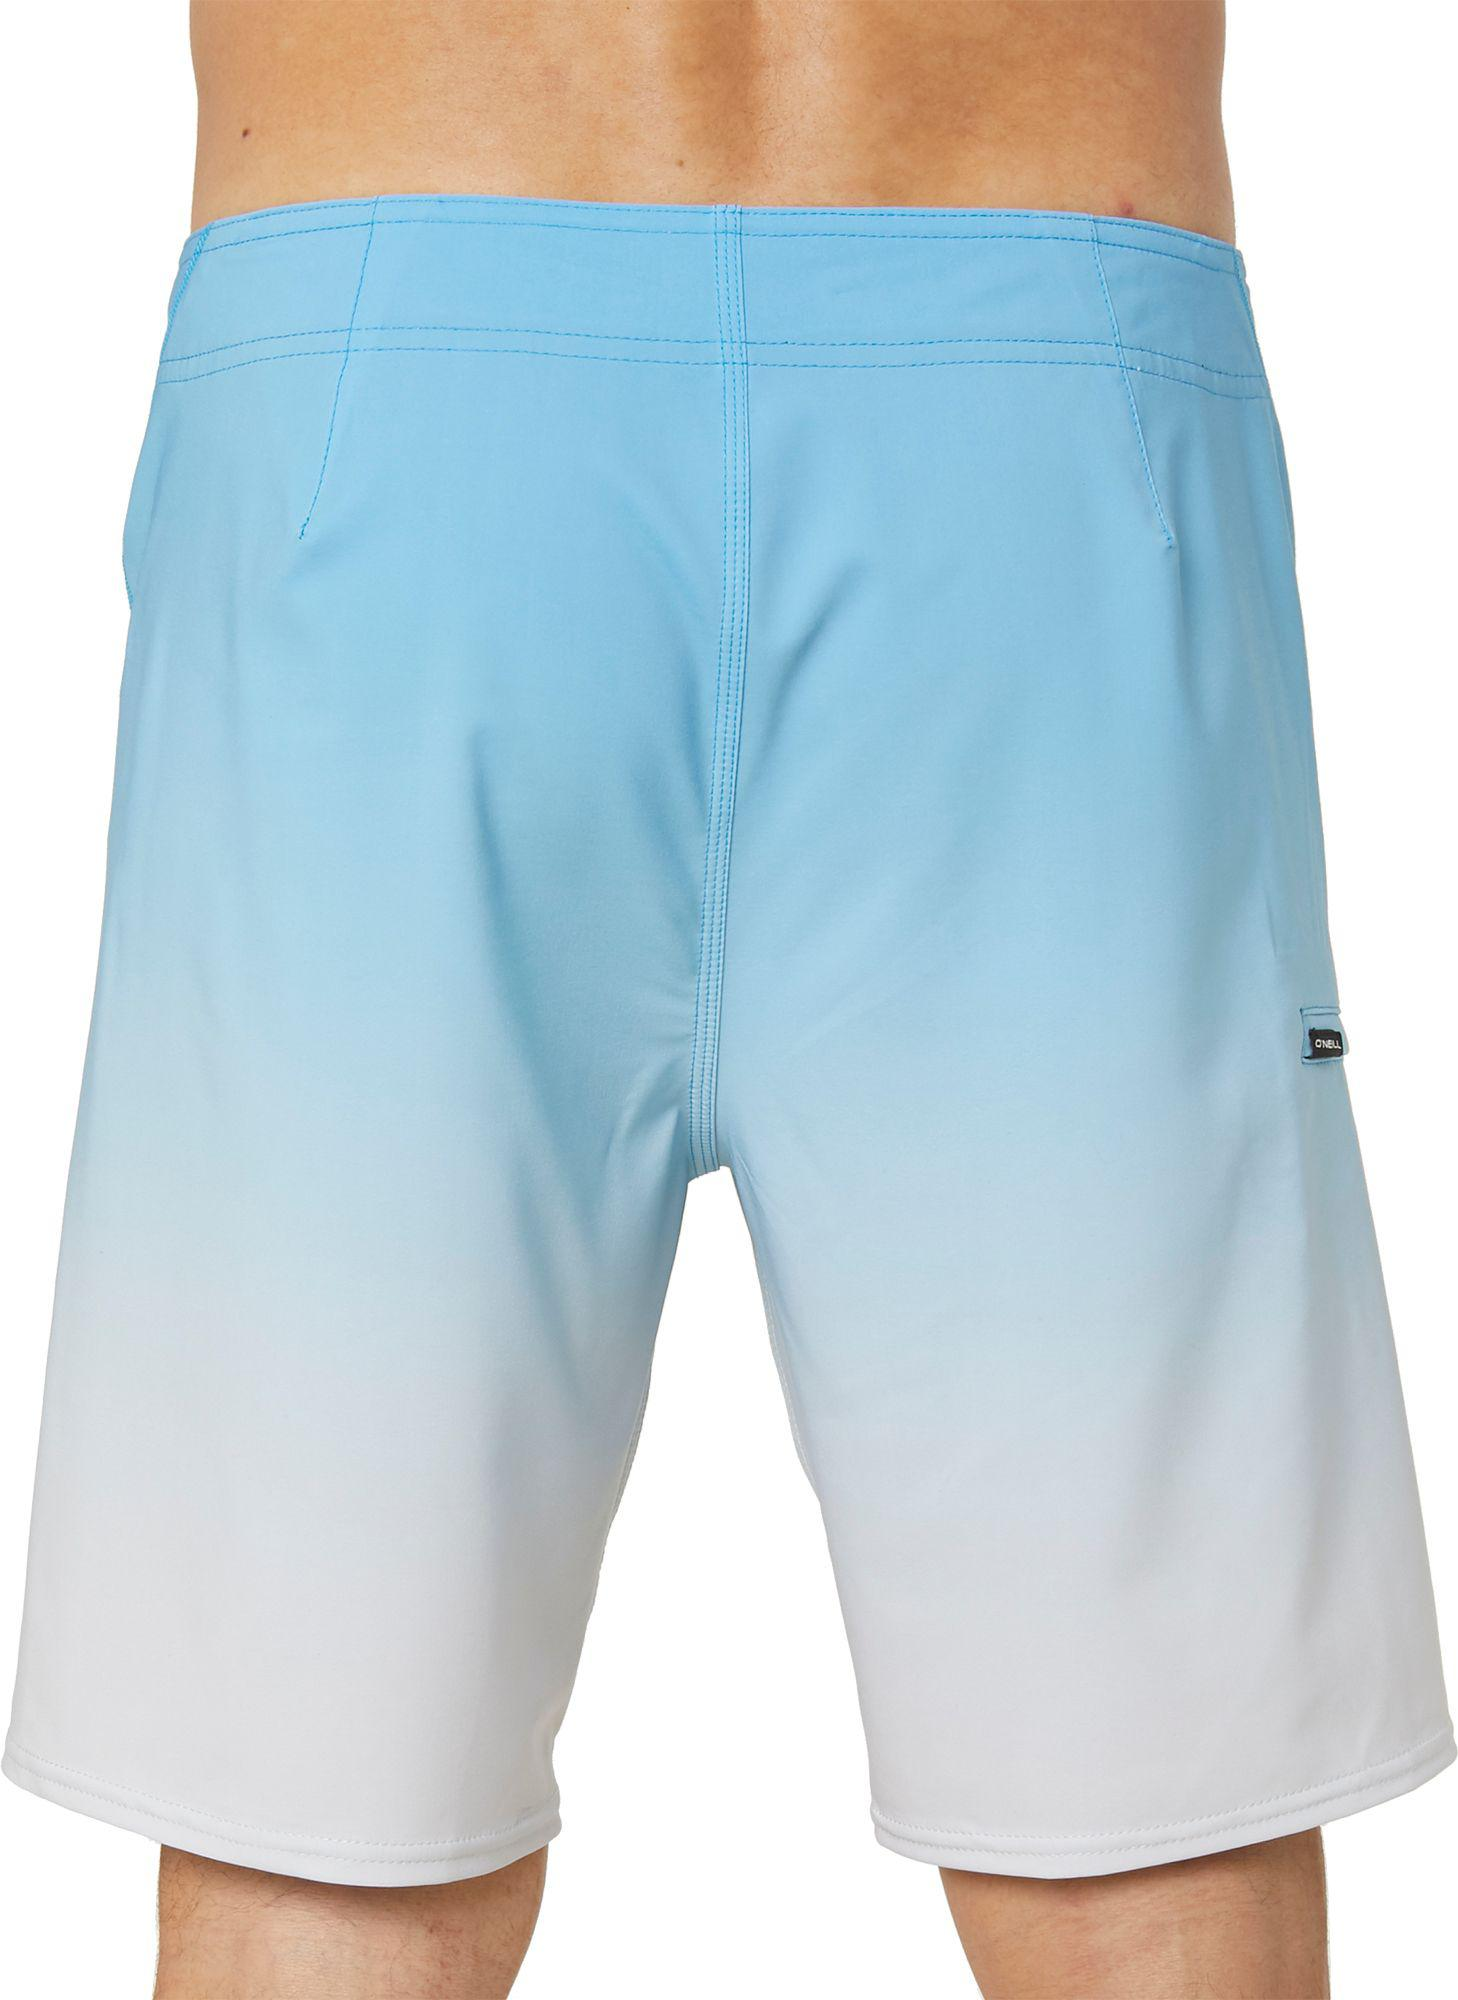 e02f2629b7 O'neill Sportswear Hyperfreak Solid Board Shorts in Blue for Men - Lyst